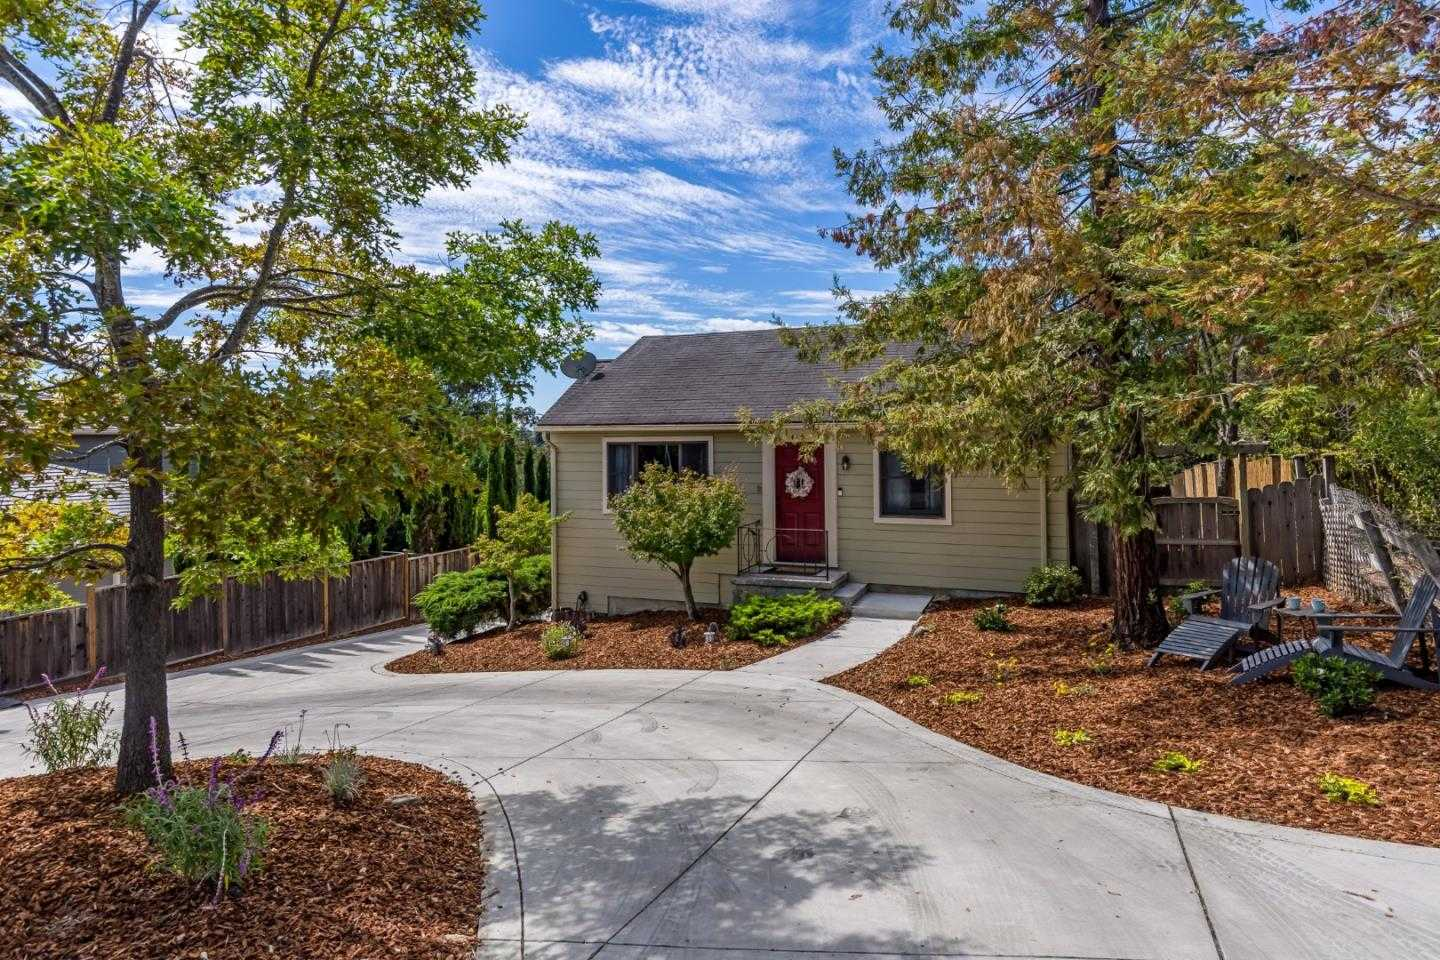 $1,475,000 - 2Br/1Ba -  for Sale in Redwood City